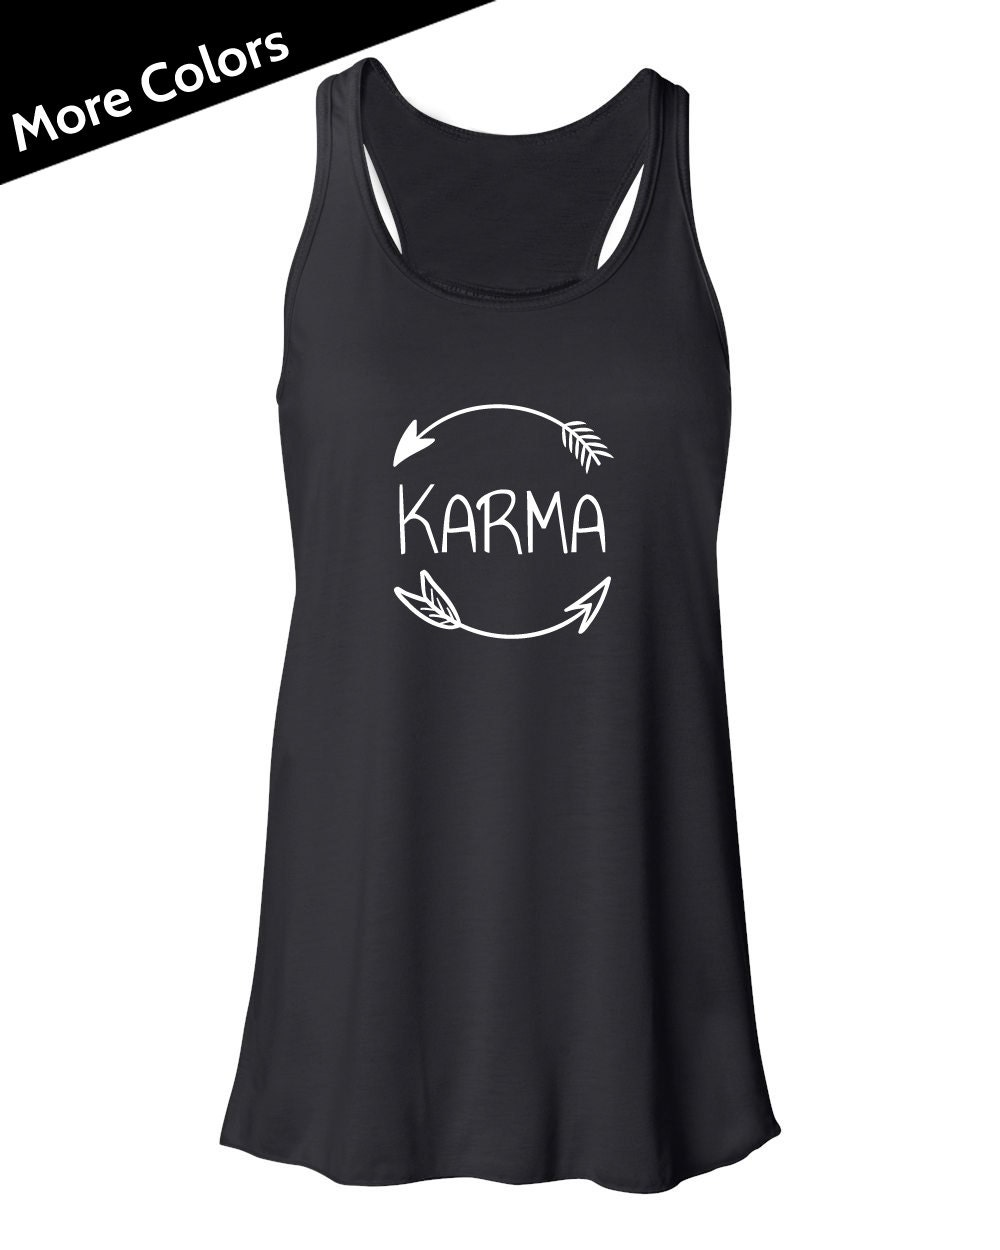 Karma Shirt Karma Tank Top Funny Yoga Tank Arrow Tank Top